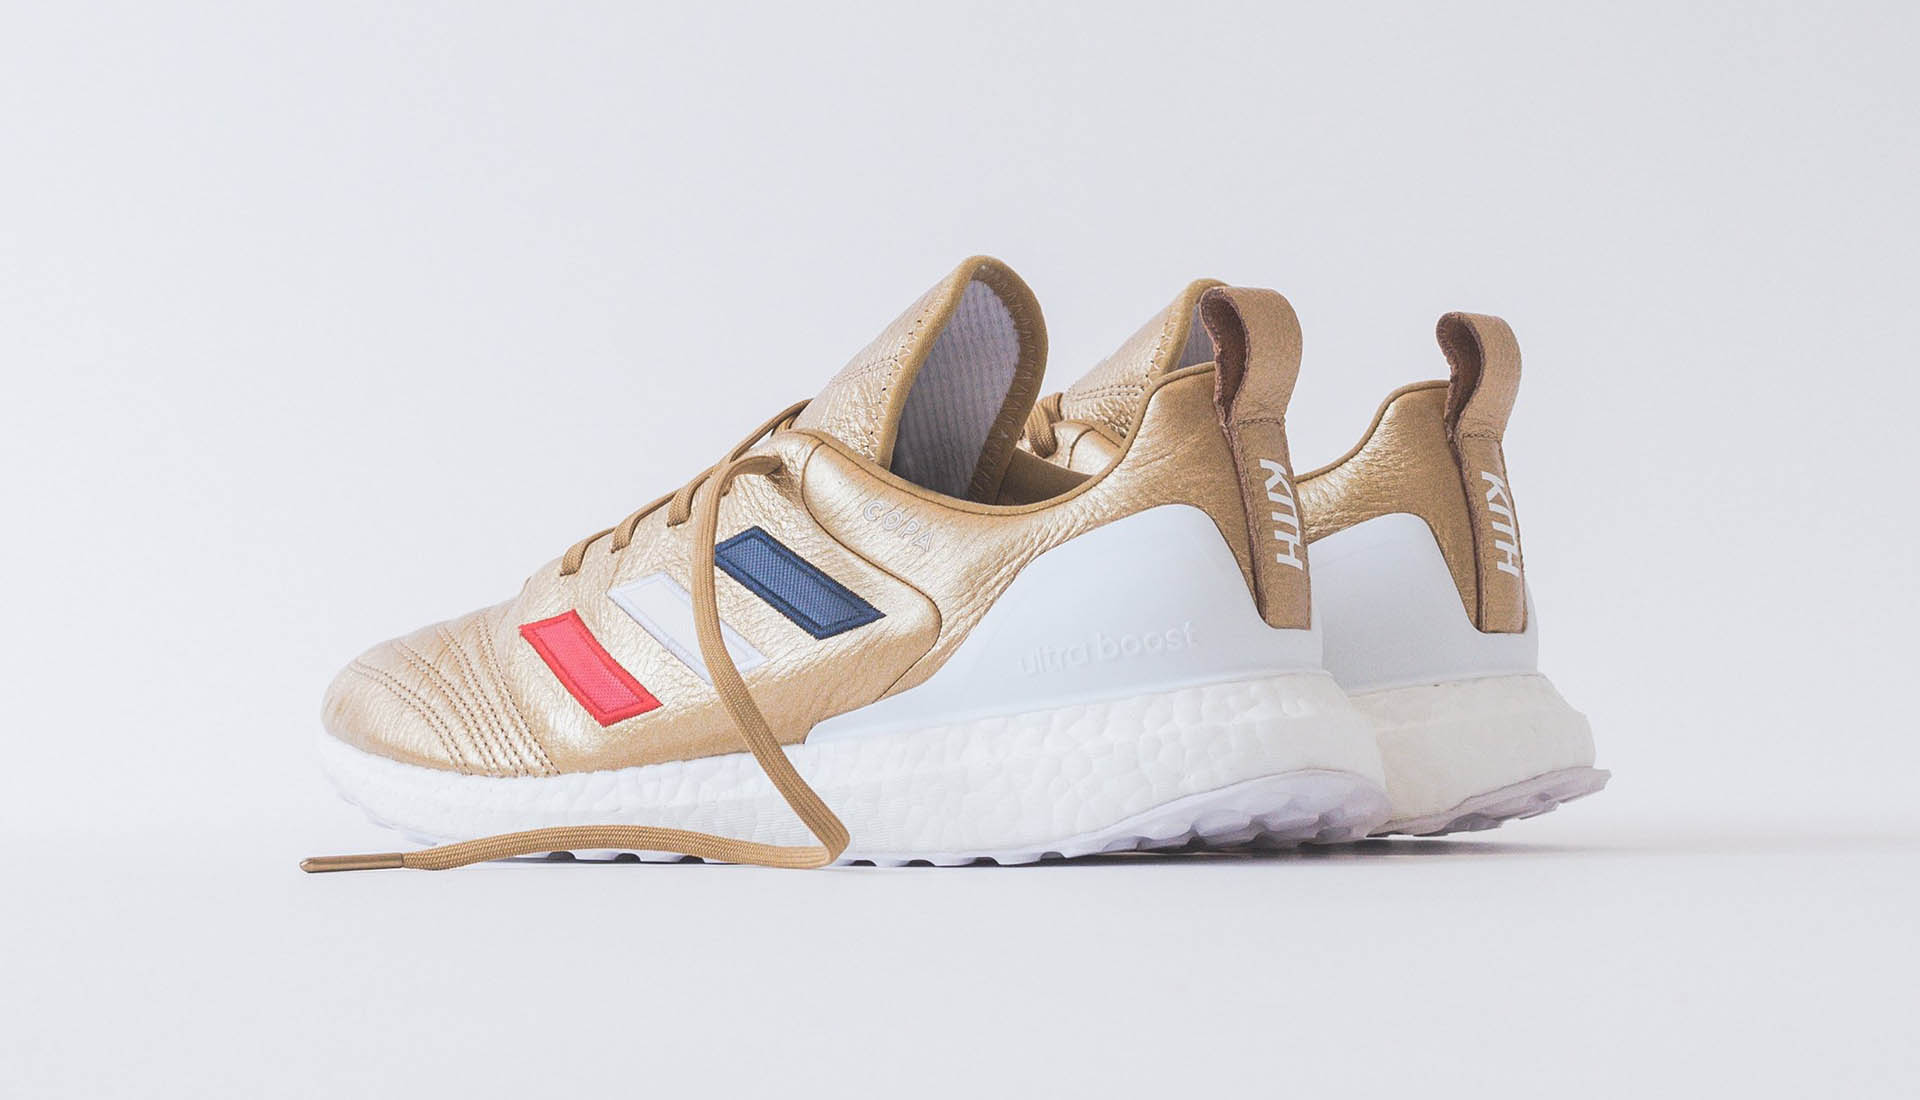 fee24256e5293 KITH Reveal New ACE 16+   COPA Mundial 18 UltraBOOST - SoccerBible